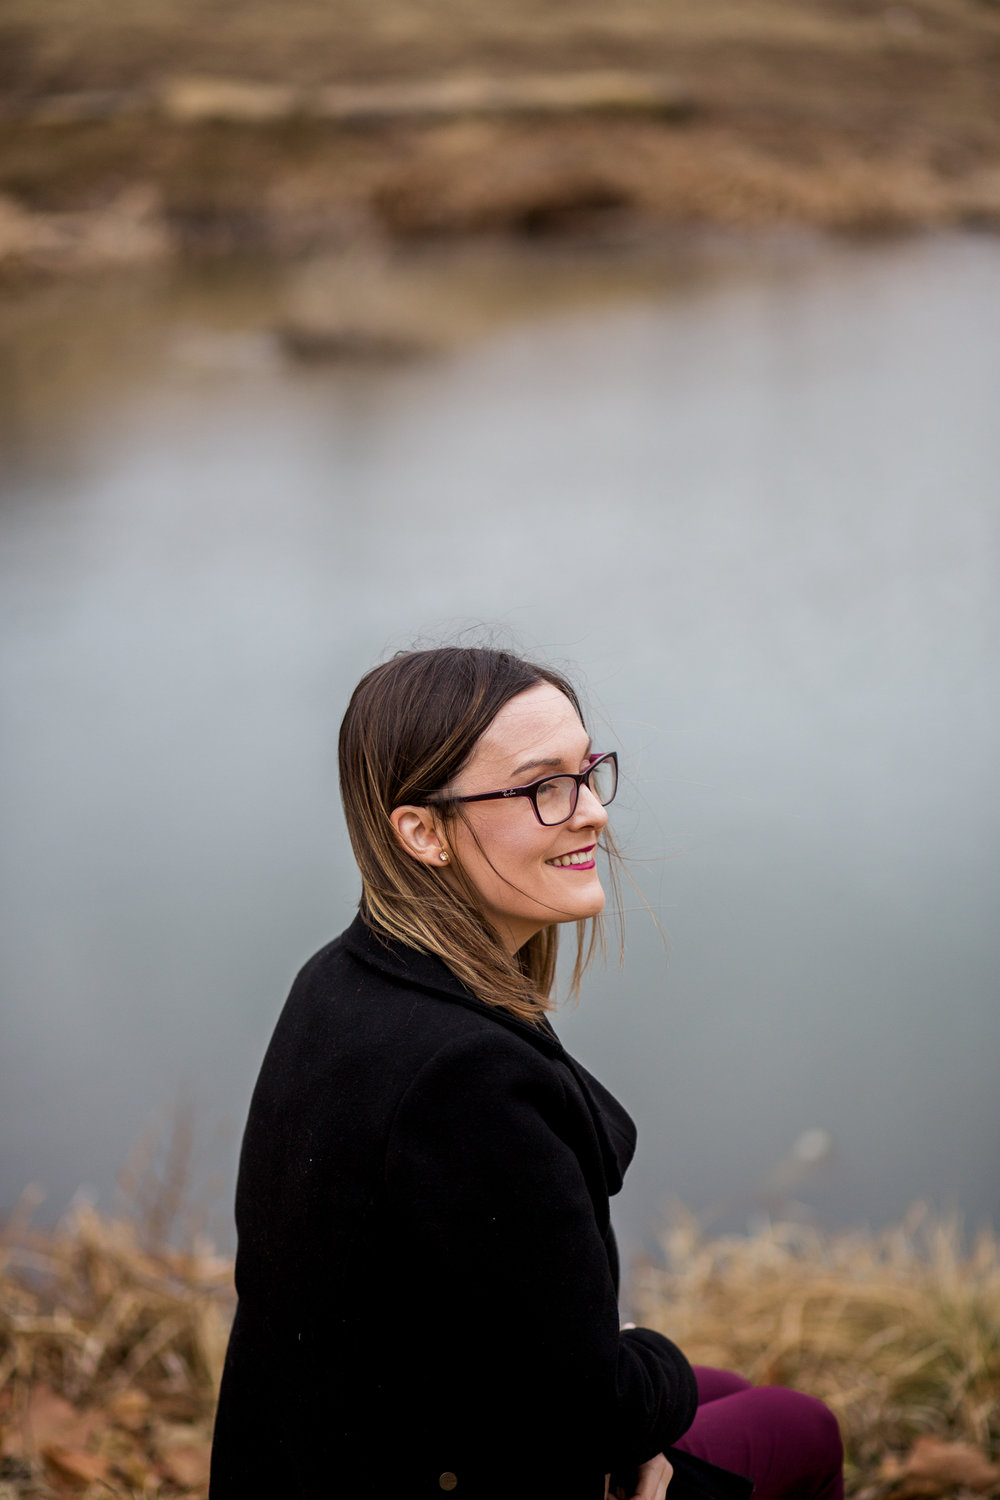 Candid portrait of woman sitting by winter pond, Kansas City lifestyle photographer, Kansas City senior photographer, Kansas City small business headshots, Kansas City lifestyle blogger, candid portrait, winter portrait session, Penn Valley Park